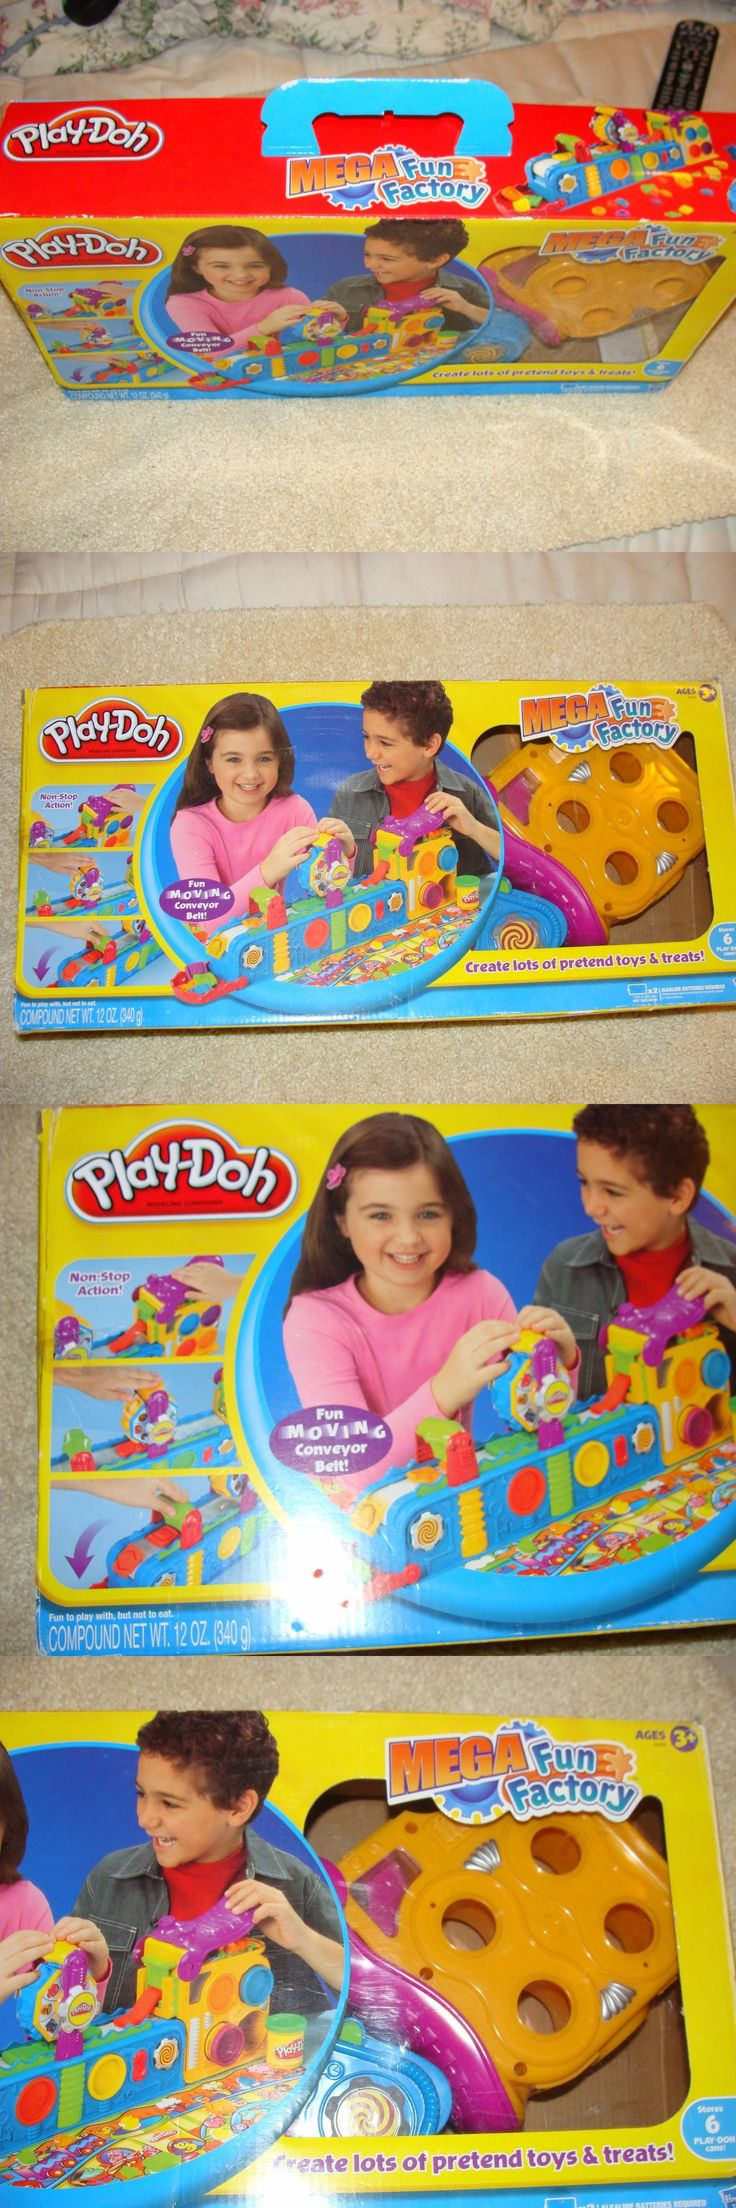 Play-Doh Modeling Clay 11740: New Play-Doh Playdoh 50Th Birthday Anniversary Mega Fun Factory Set Mold Playset -> BUY IT NOW ONLY: $265 on eBay!